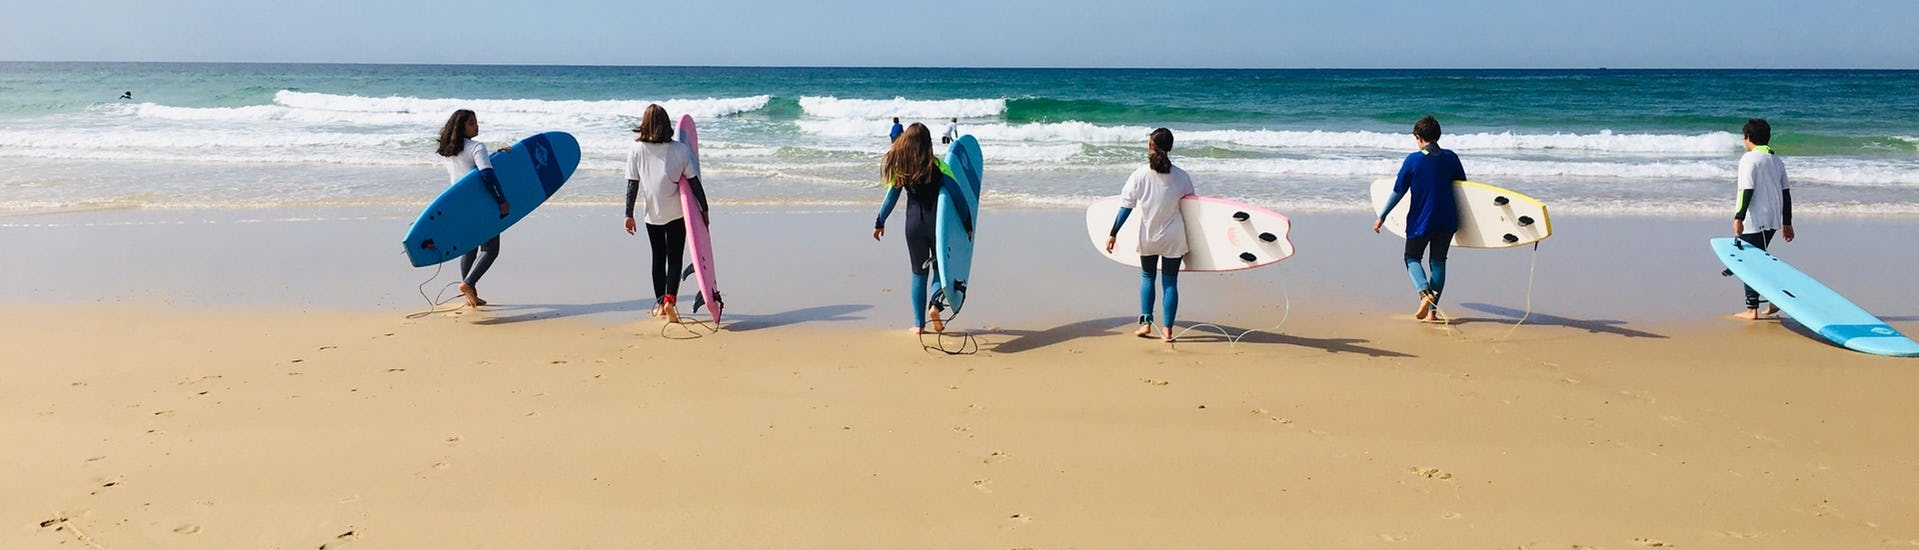 Some students are having their Private Surfing Lessons for All Levels from 8 years with It's On Surf School.